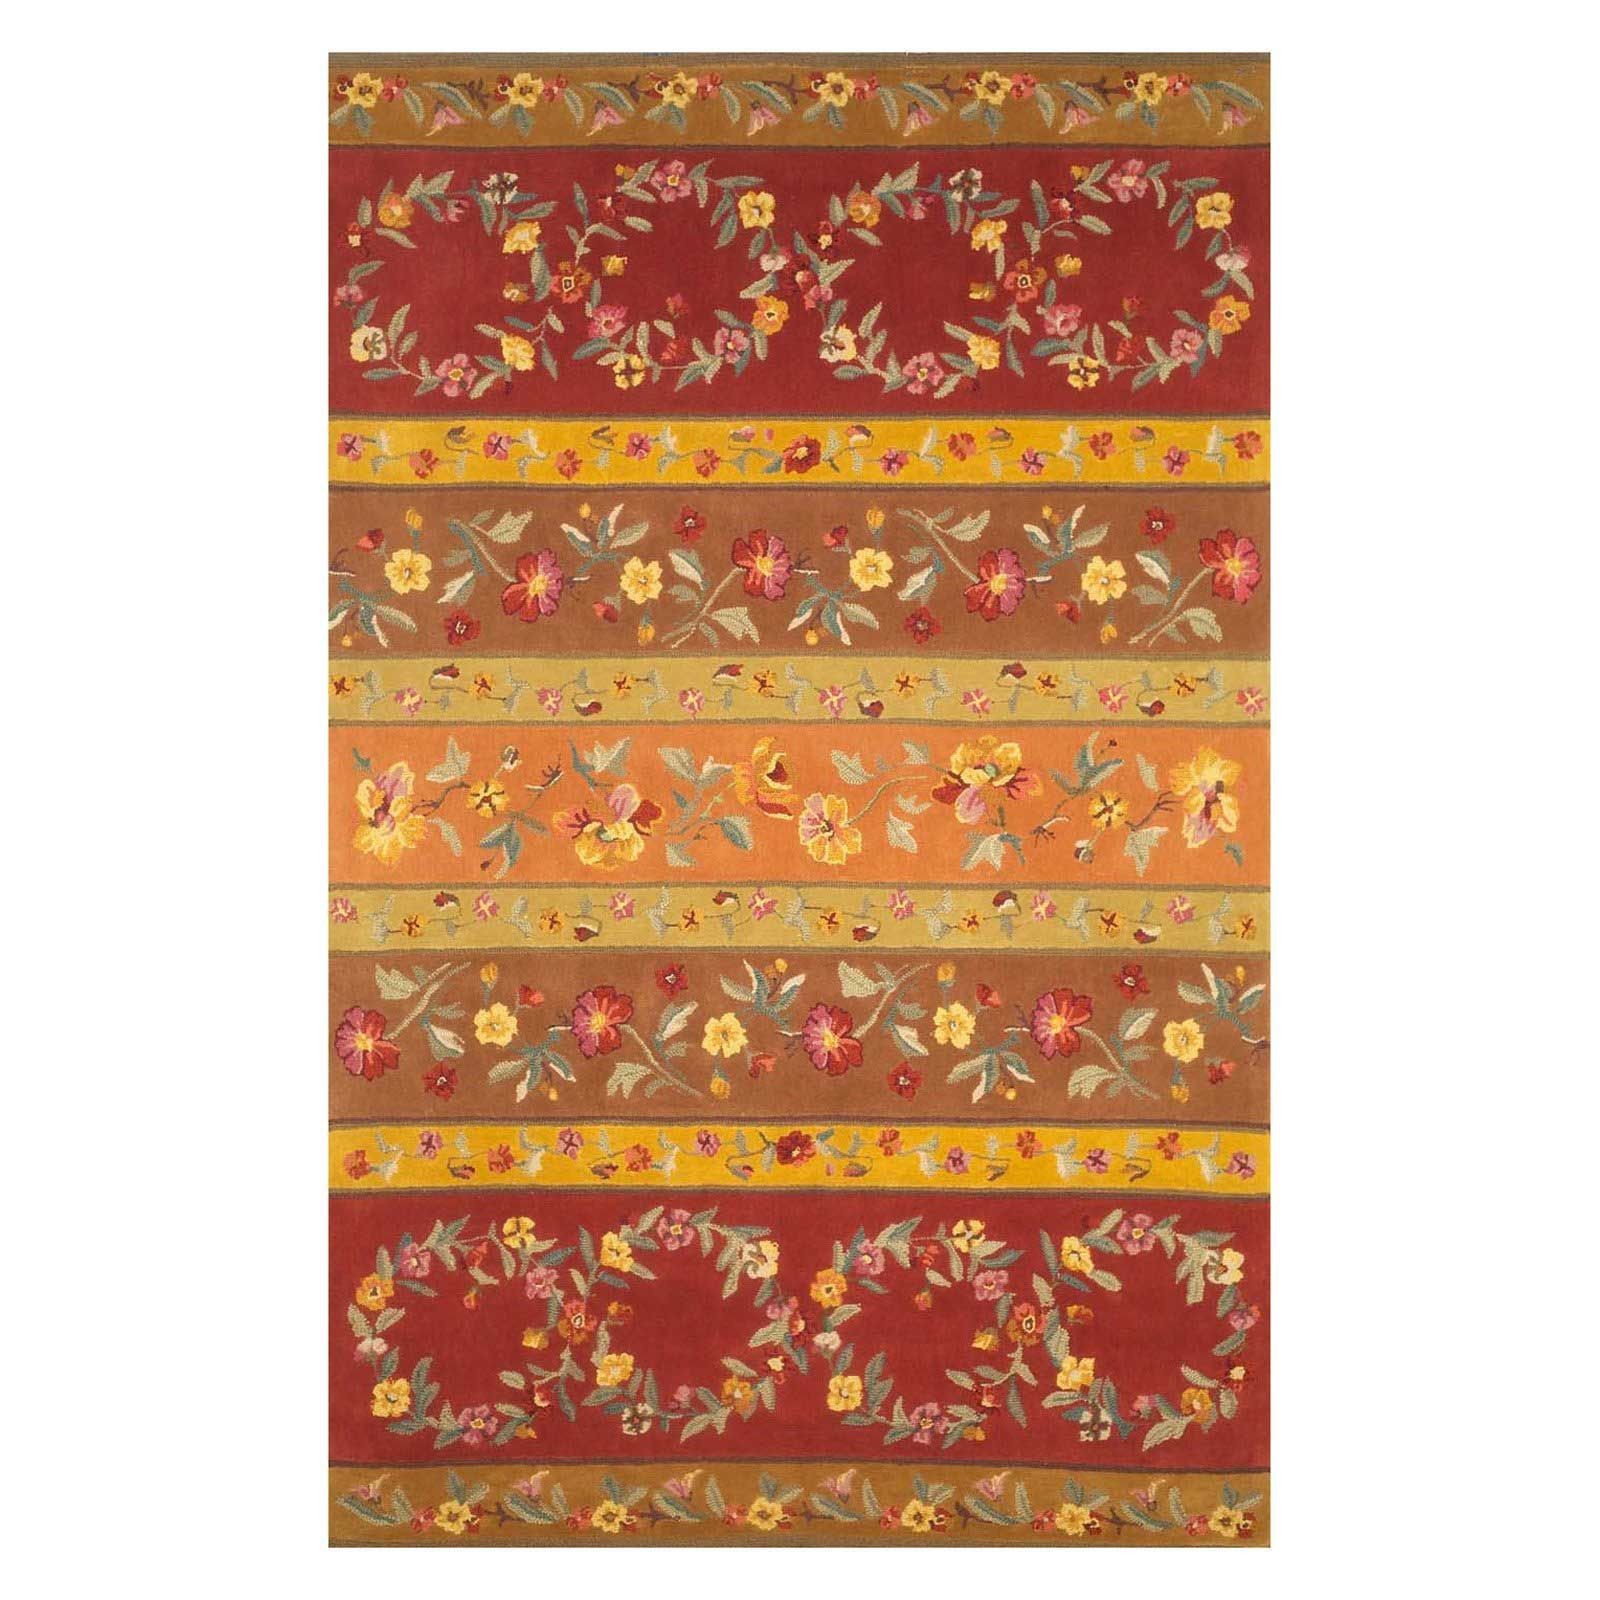 Tips on bringing tuscany to the kitchen with tuscan kitchen decor - Tuscan Style Area Rugs For Decorating Your Floors In Elegant